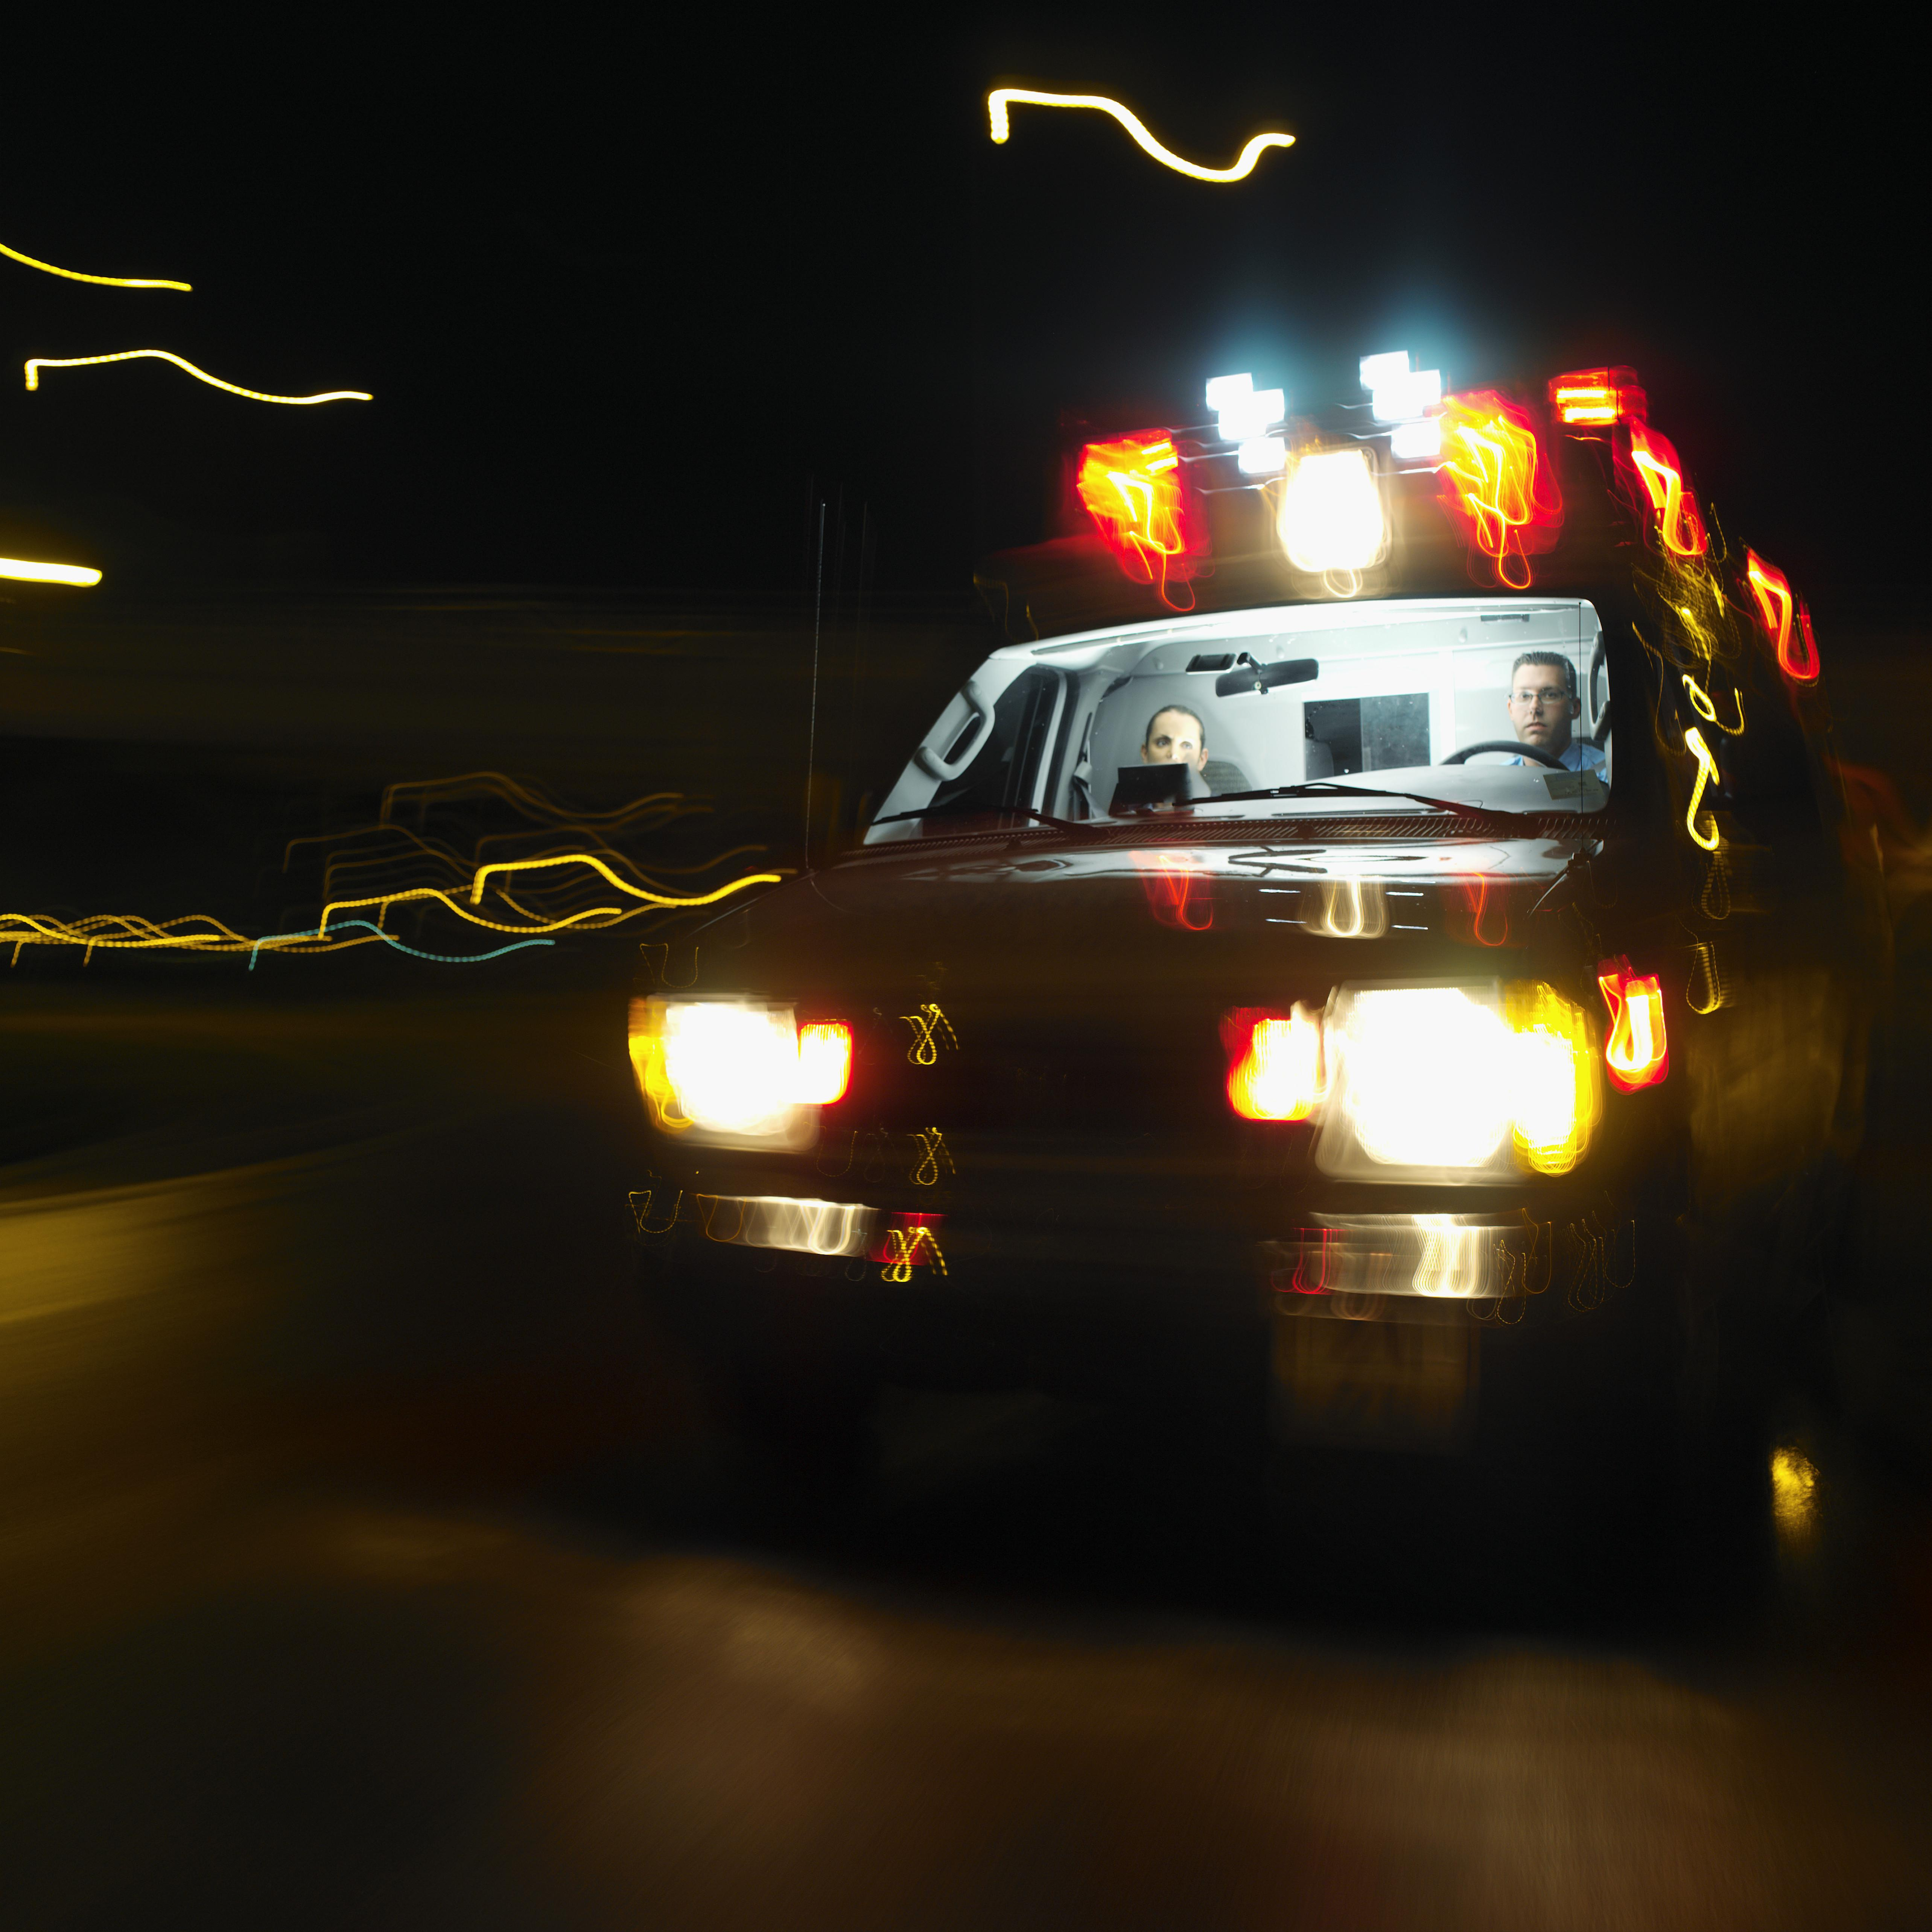 An ambulance on the road at night with two young paramedics inside (blurred)